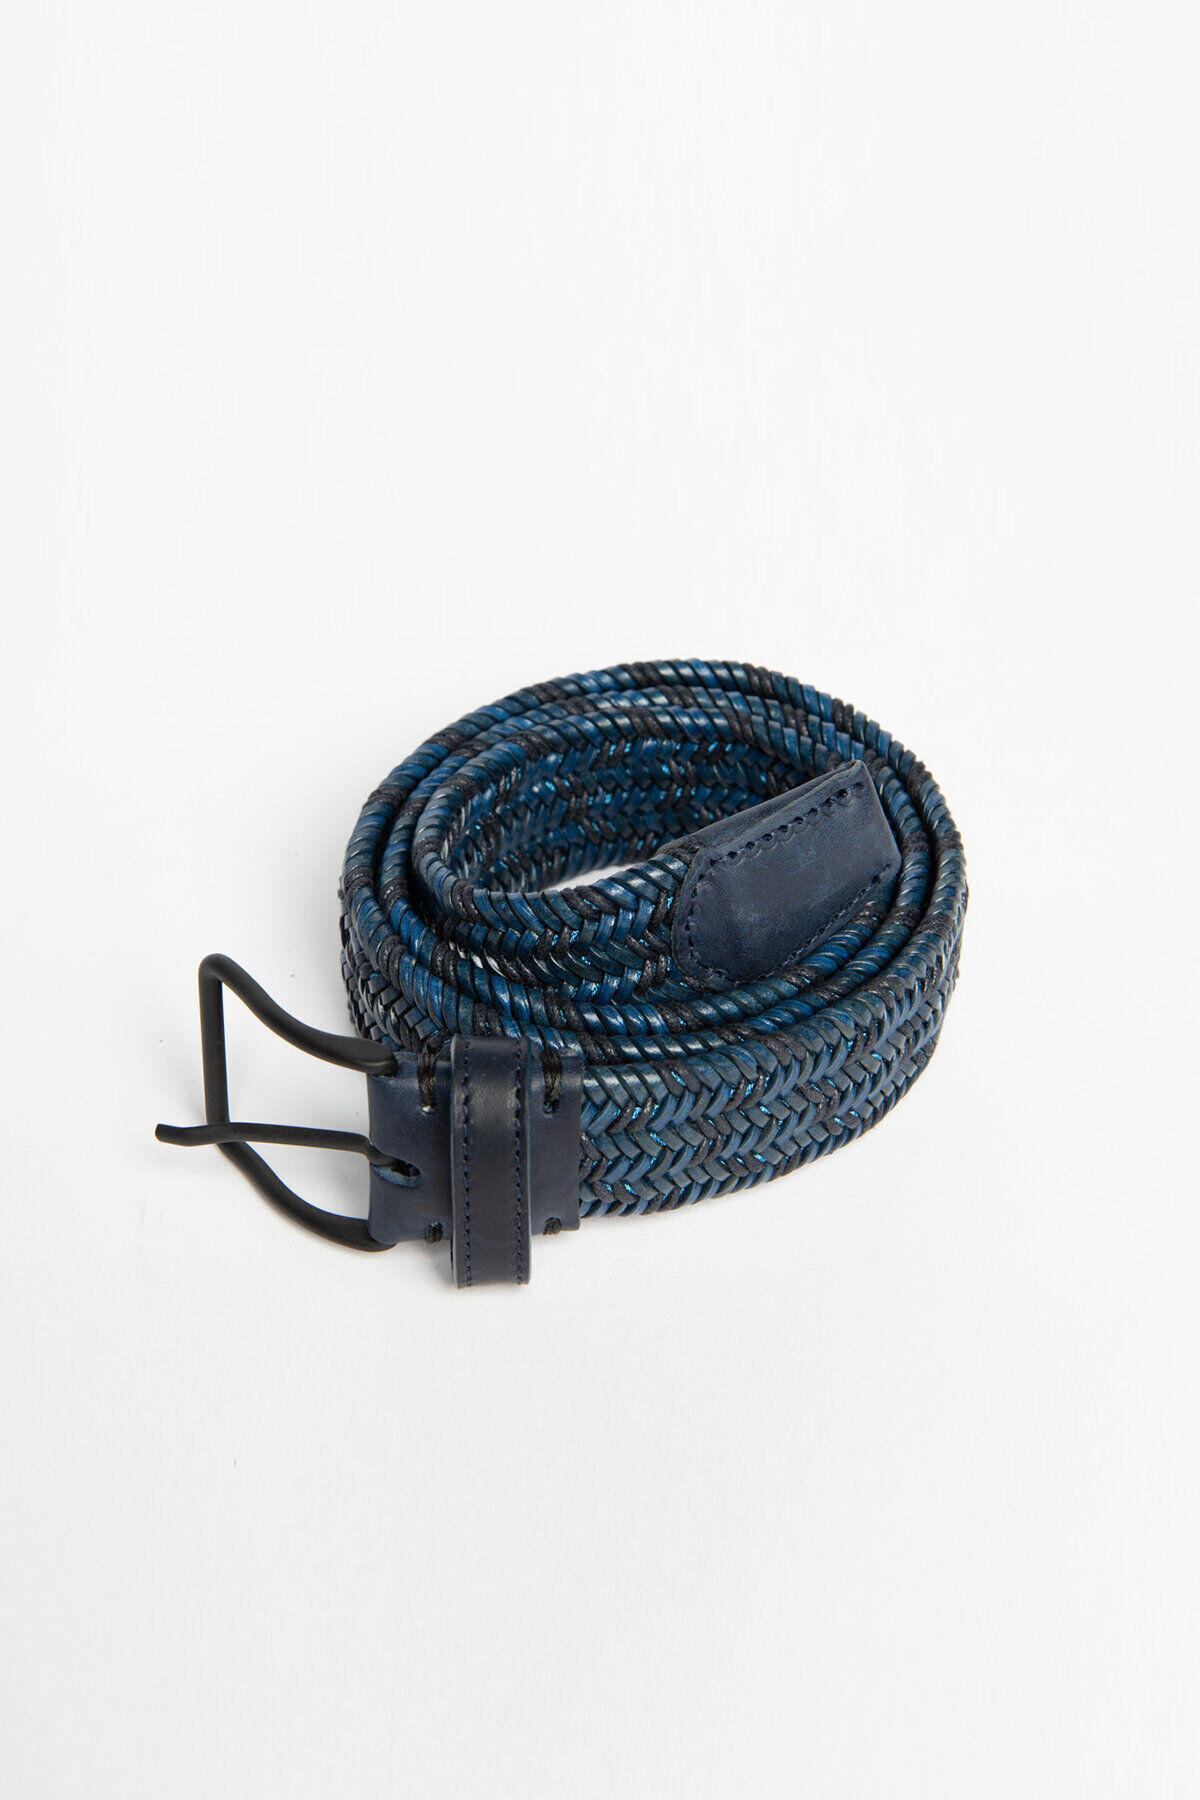 35MM WEAVE BELT IW